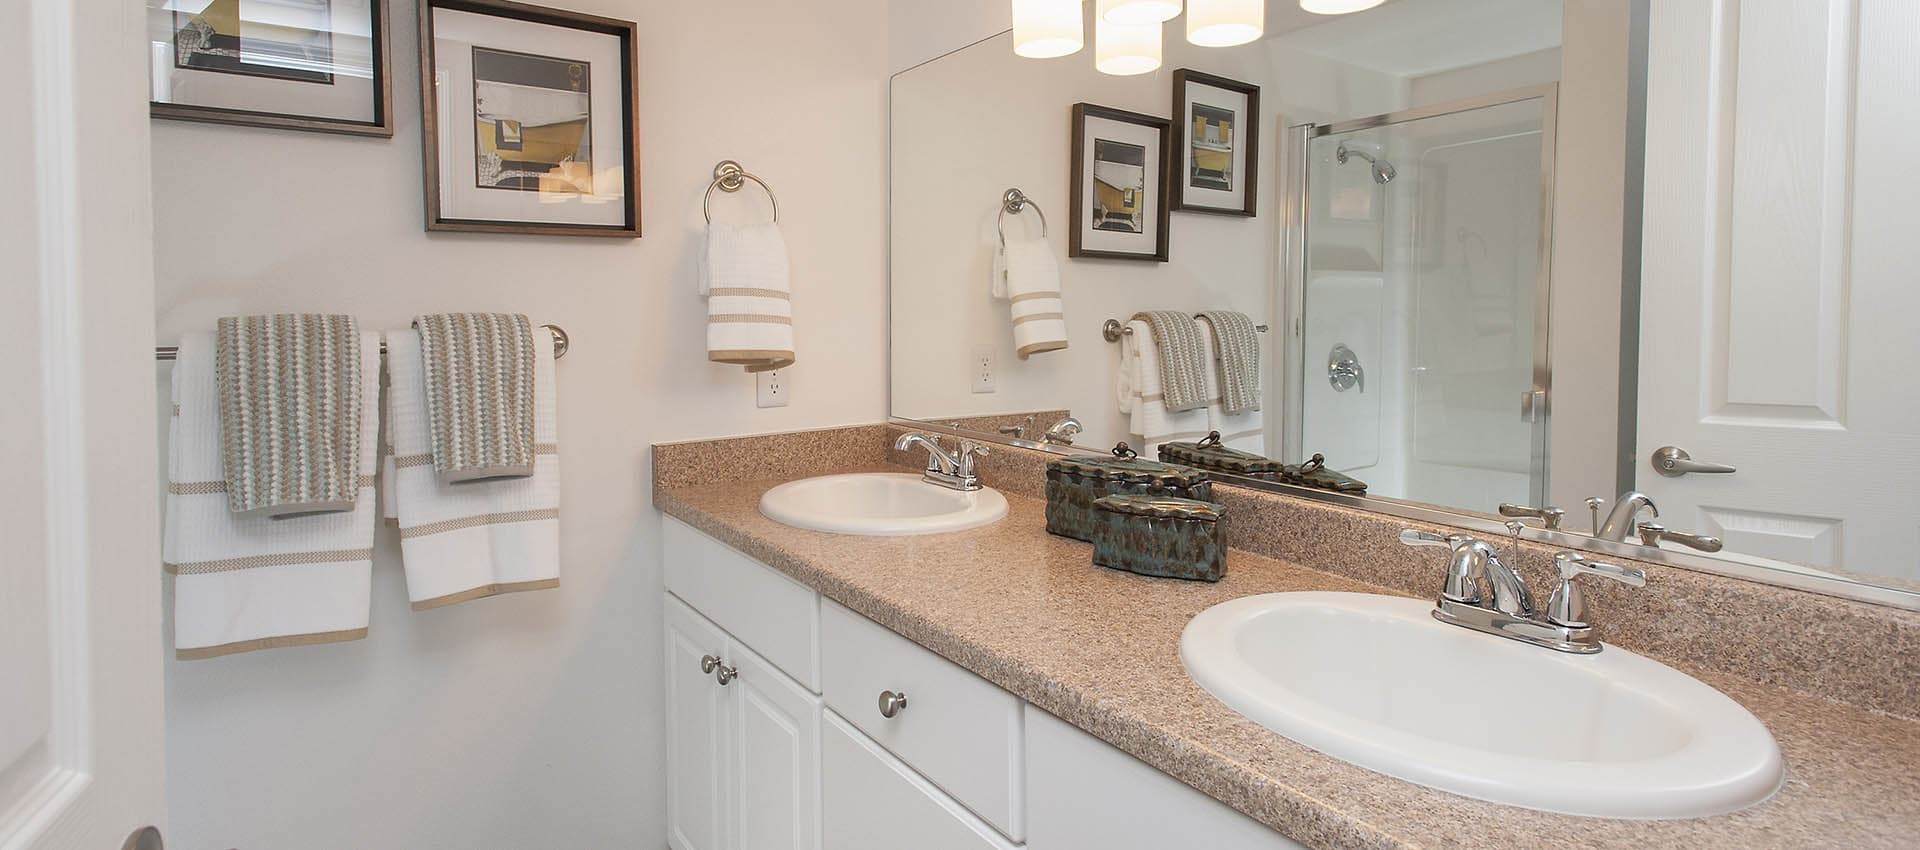 Well Lit Bathroom at Azure Apartment Homes in Petaluma, California